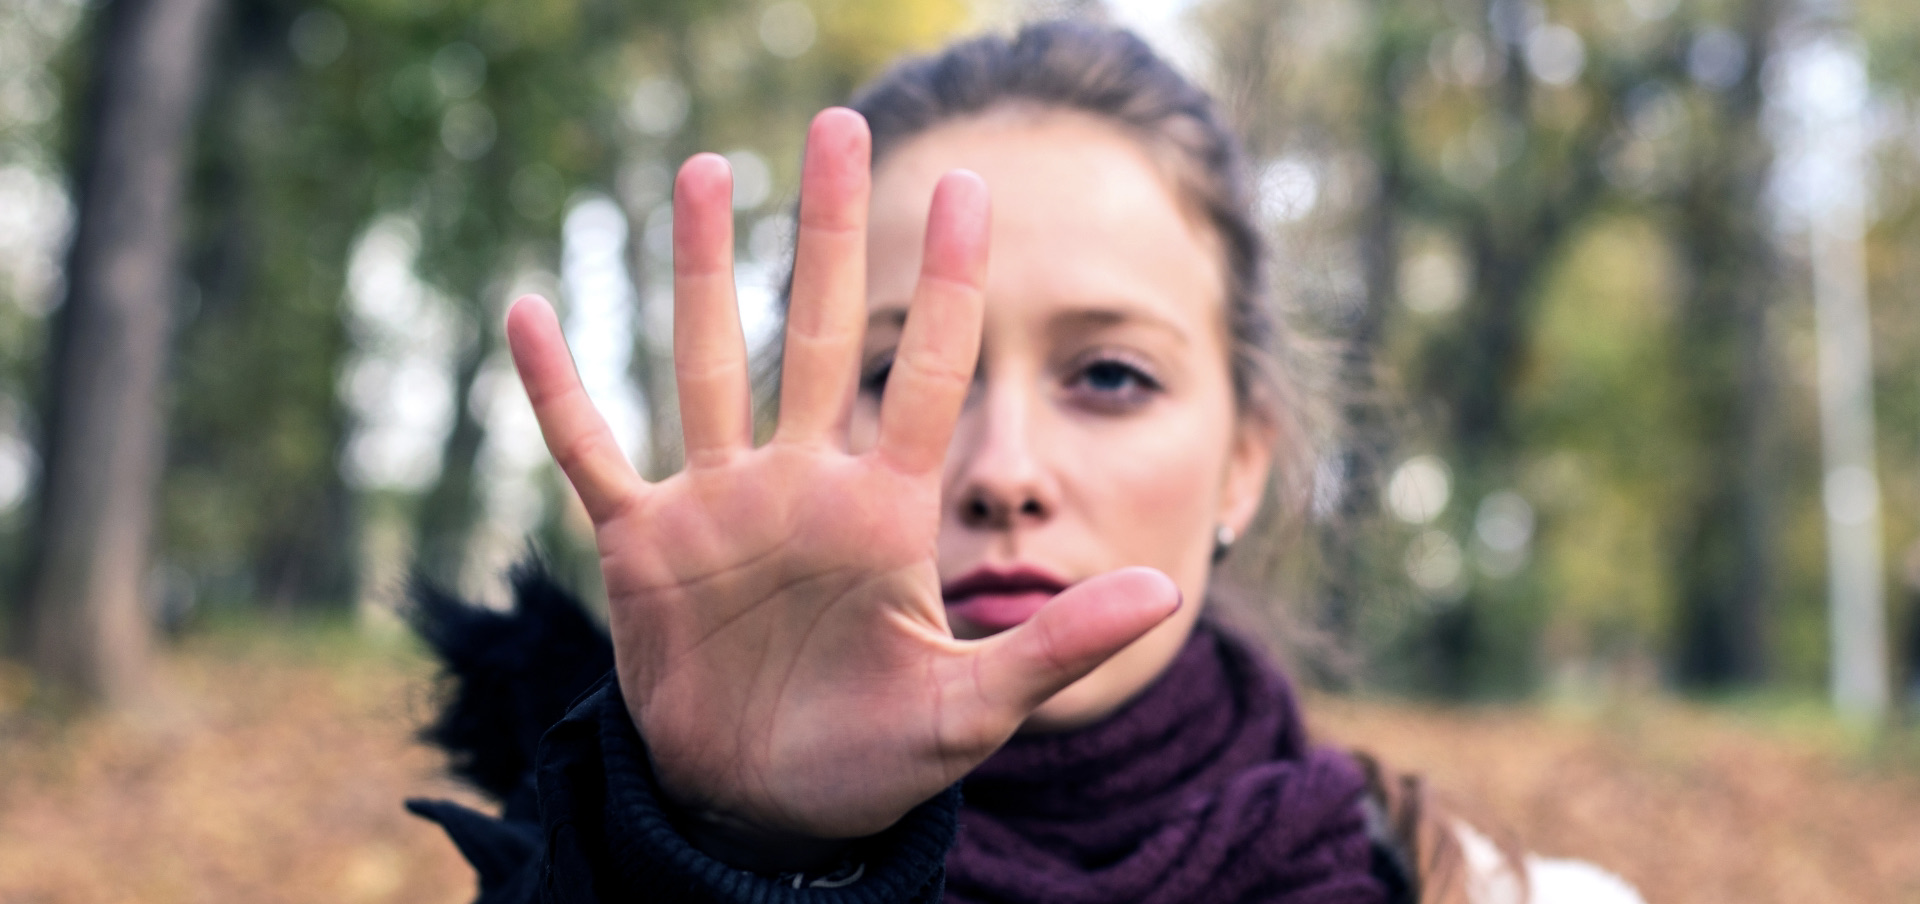 a woman holding up her hand to signal stop